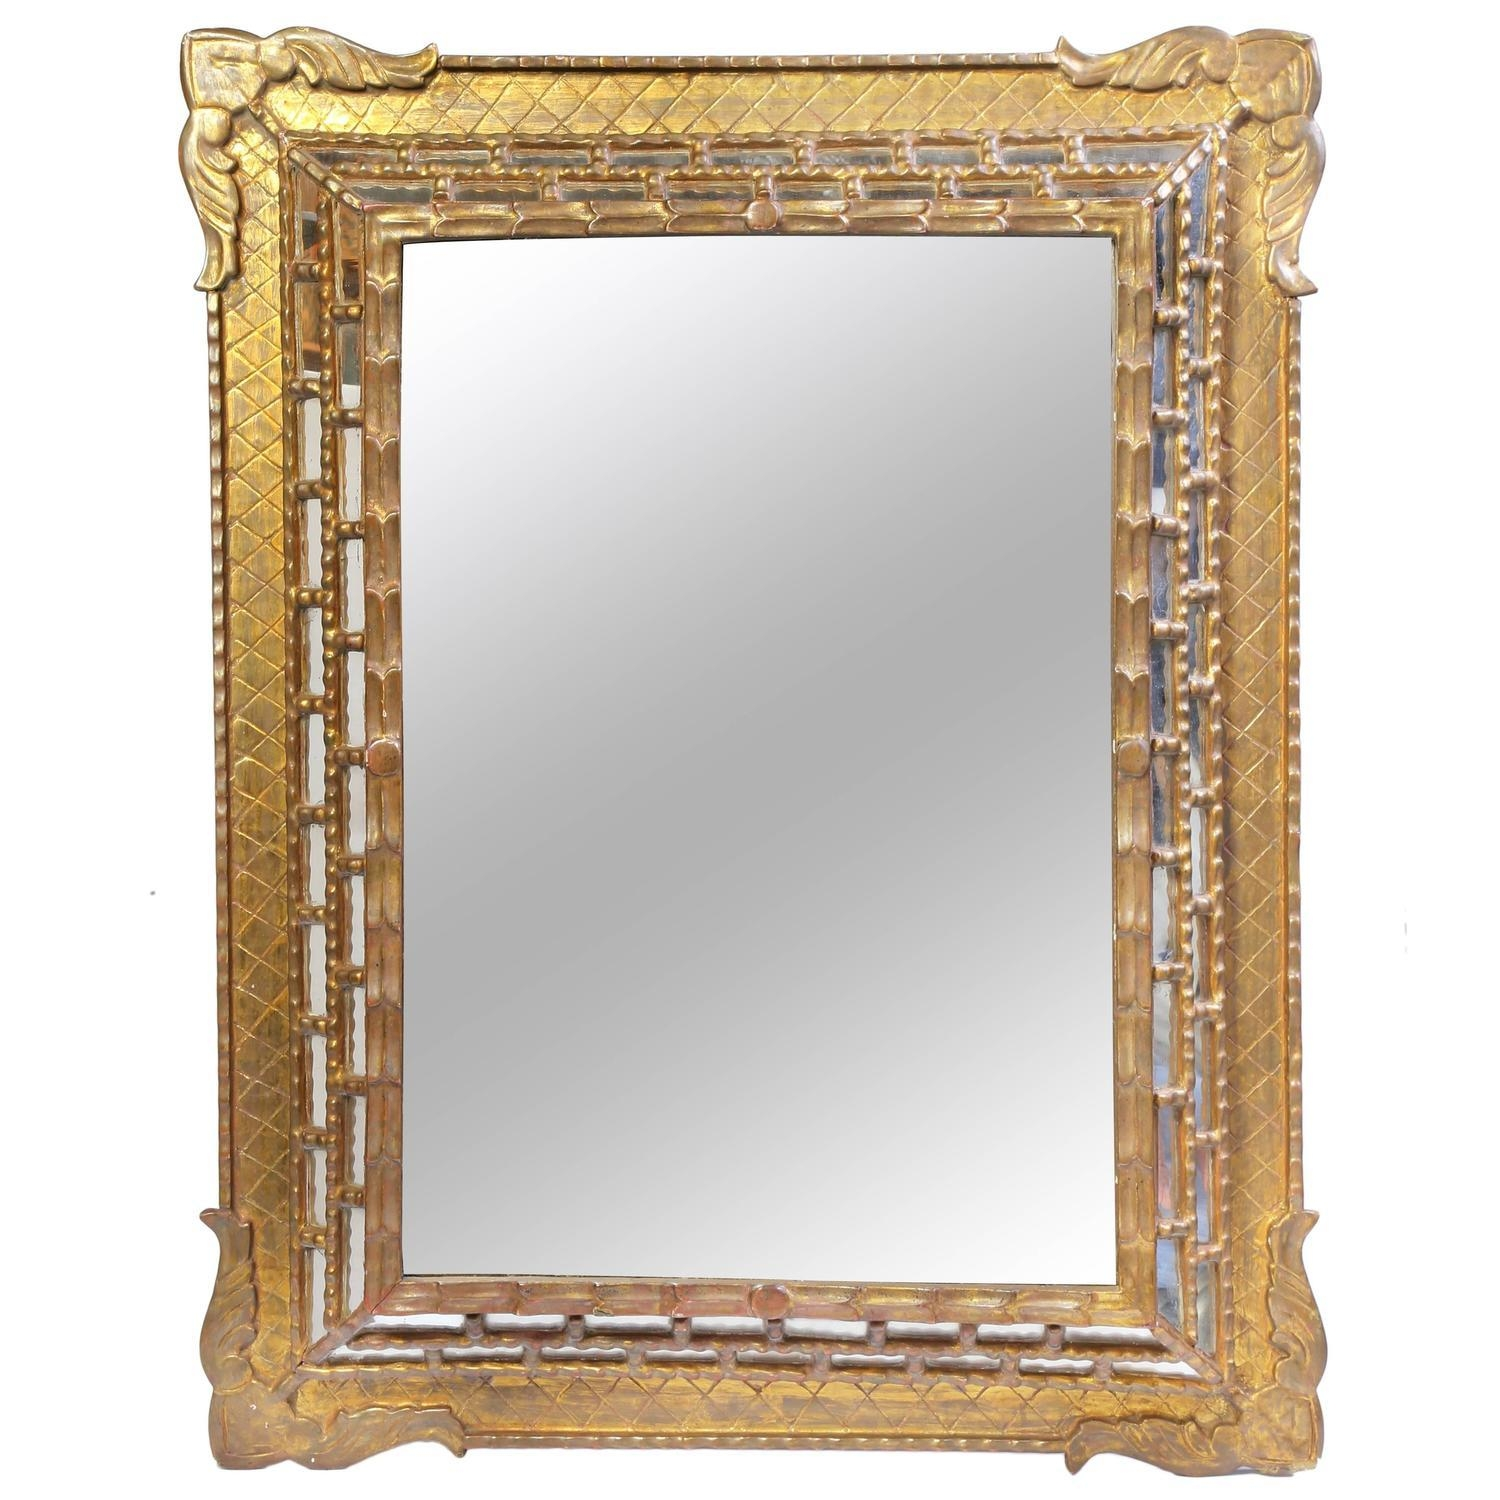 Bathroom: Astounding Baroque Mirror With Unique Frame For Bathroom Intended For Gothic Style Mirror (View 12 of 20)